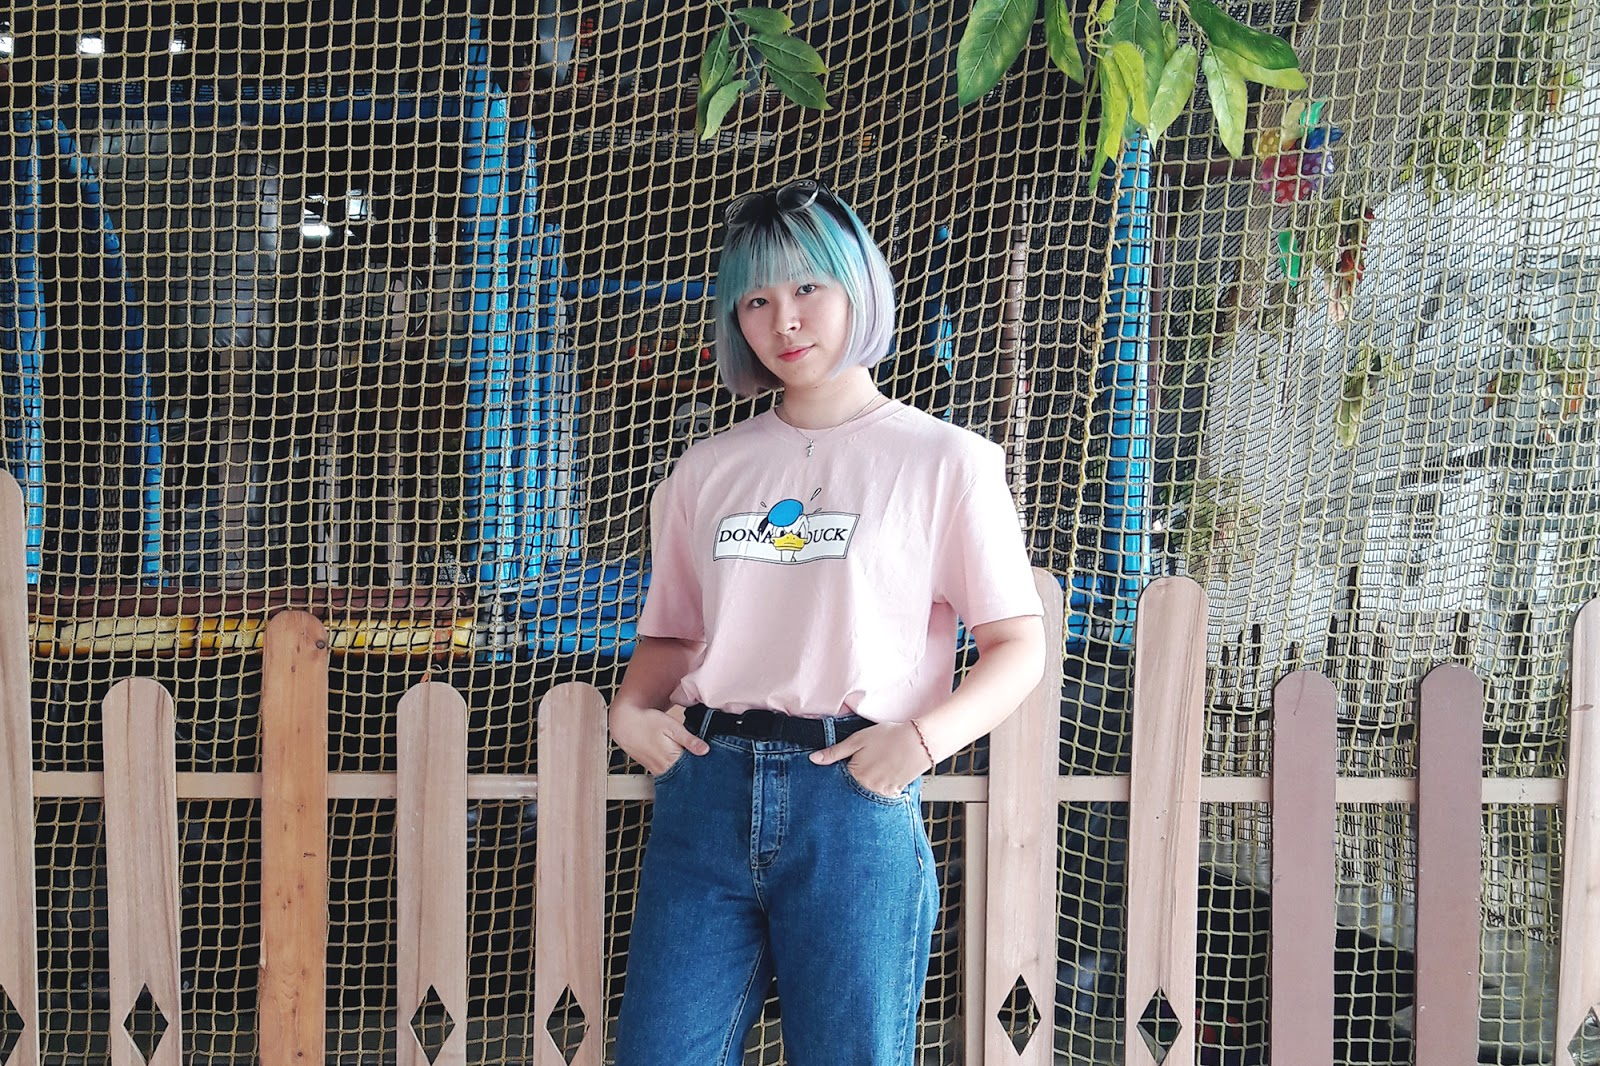 DONALD DUCK TEE MOM JEANS | www.bigdreamerblog.com